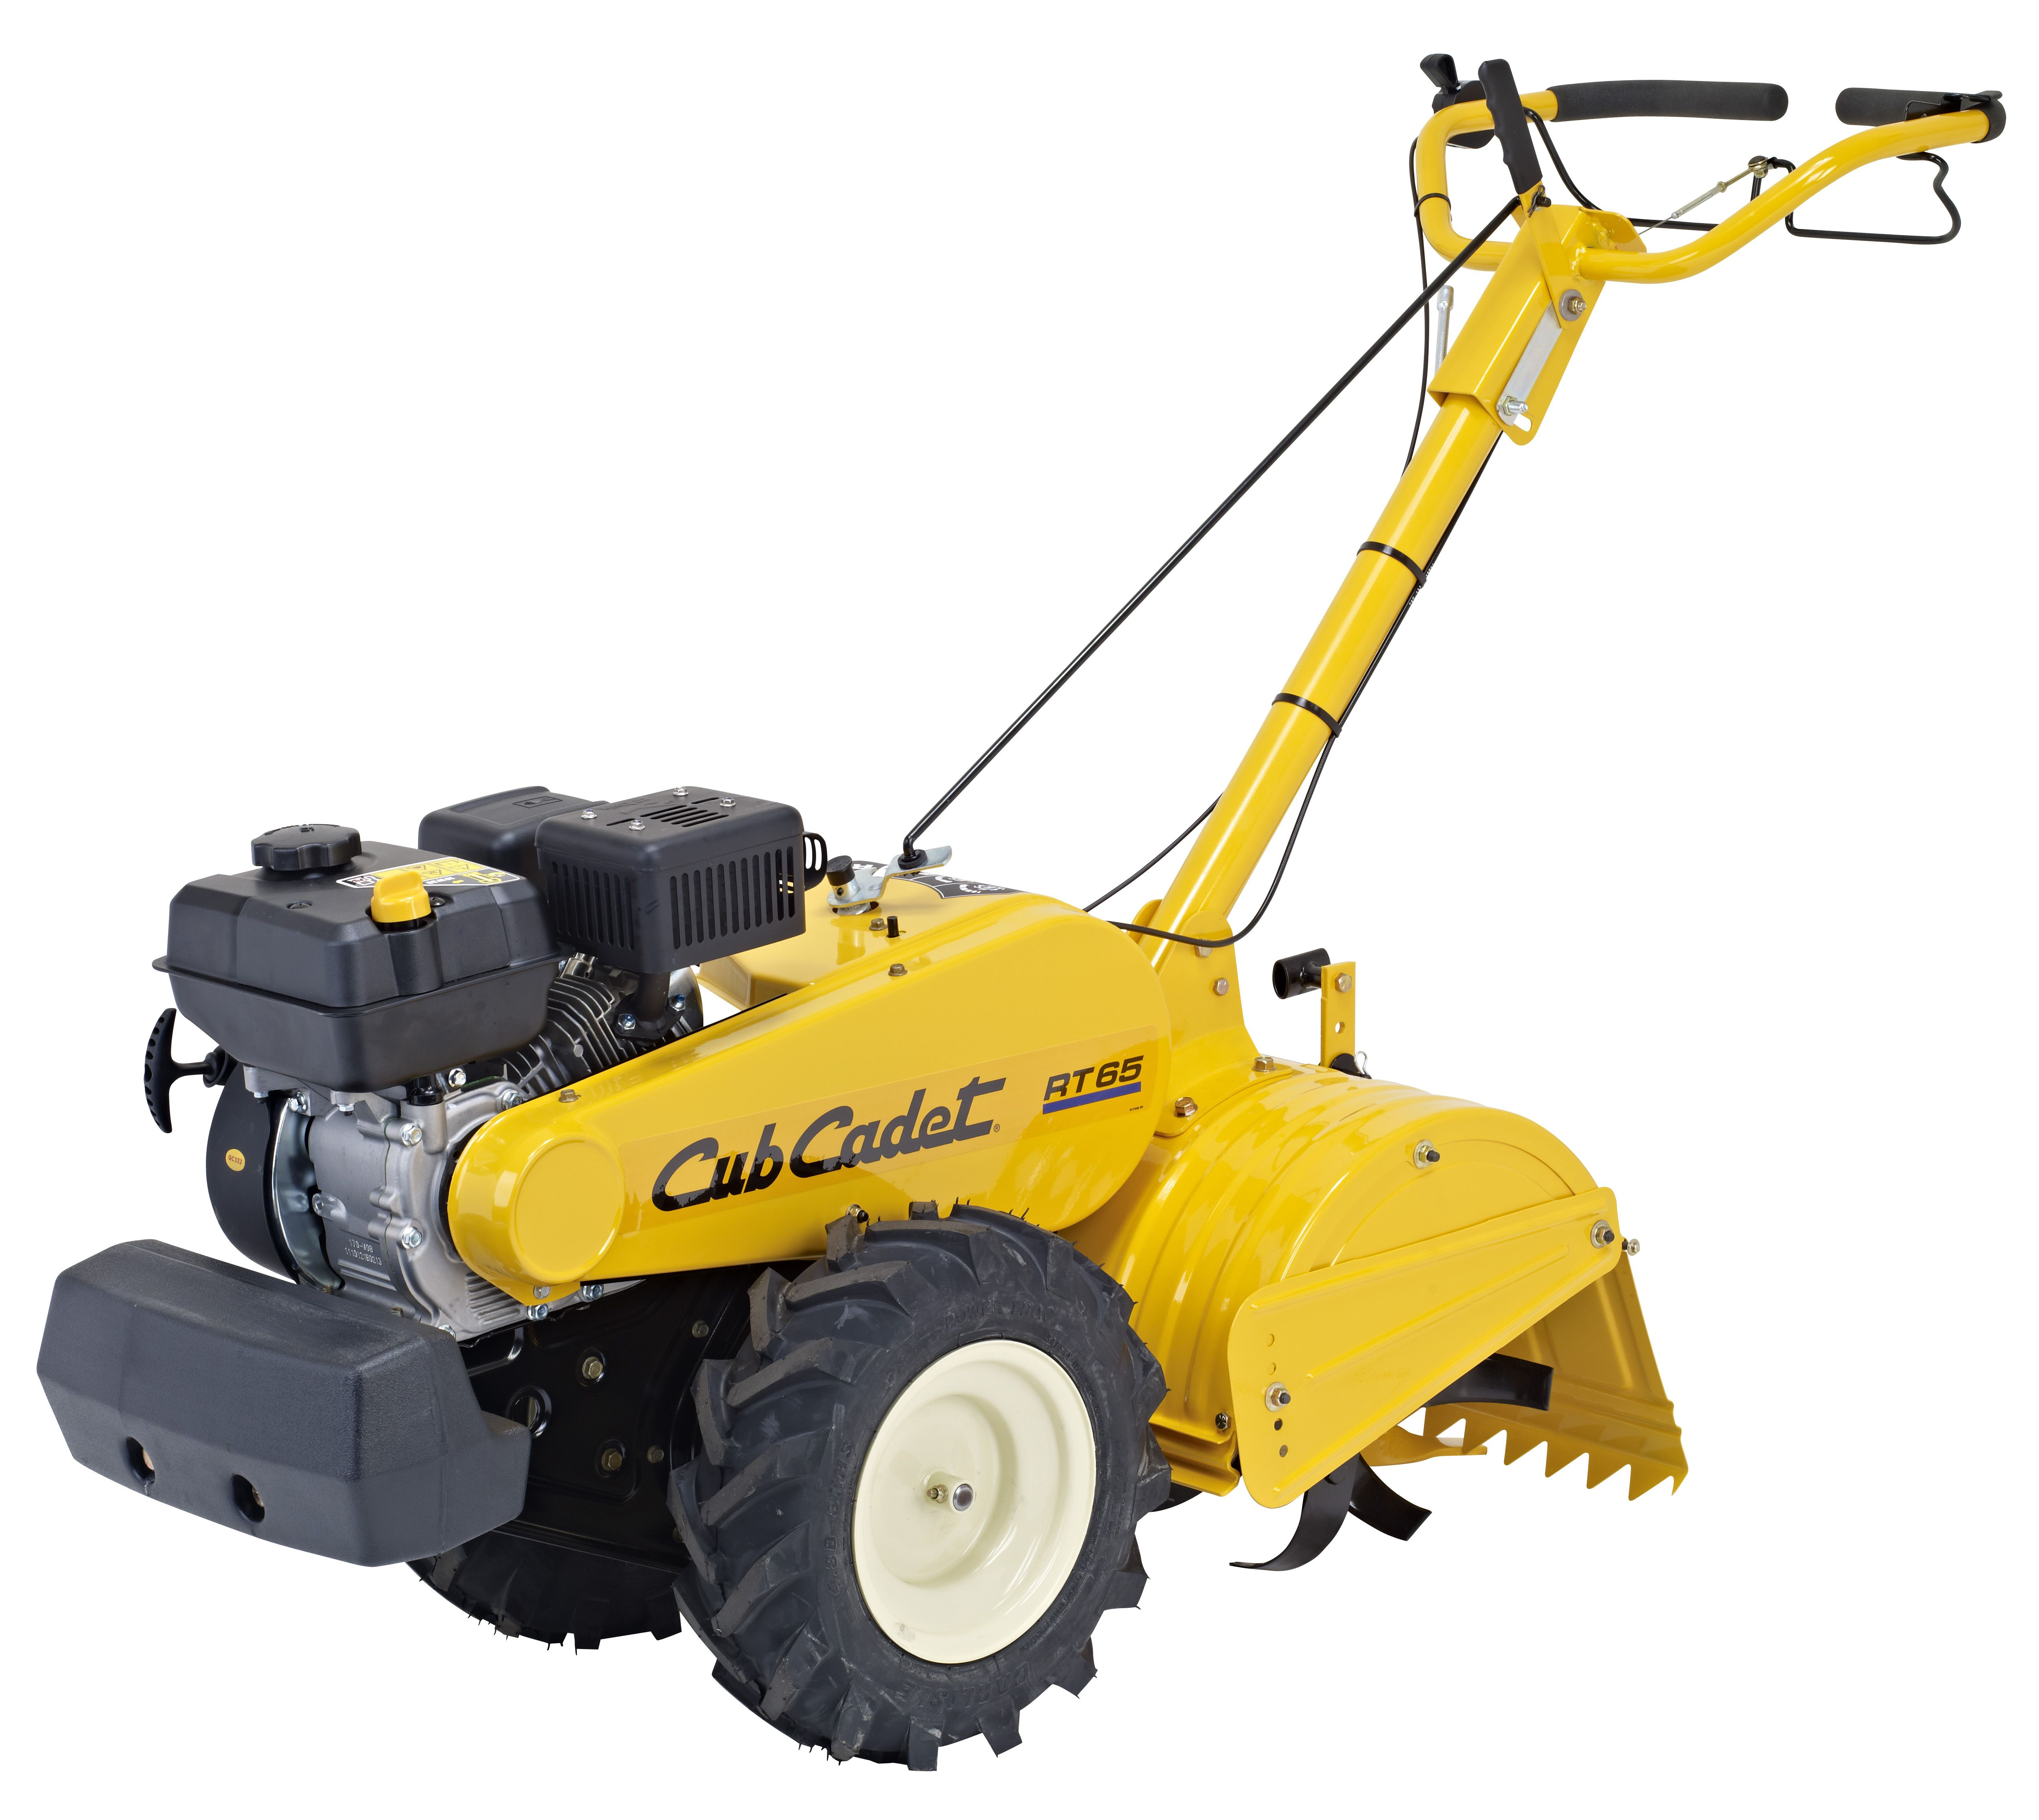 Stump Grinder rental from home depot. $90 per day. Weighs 270 lbs ...